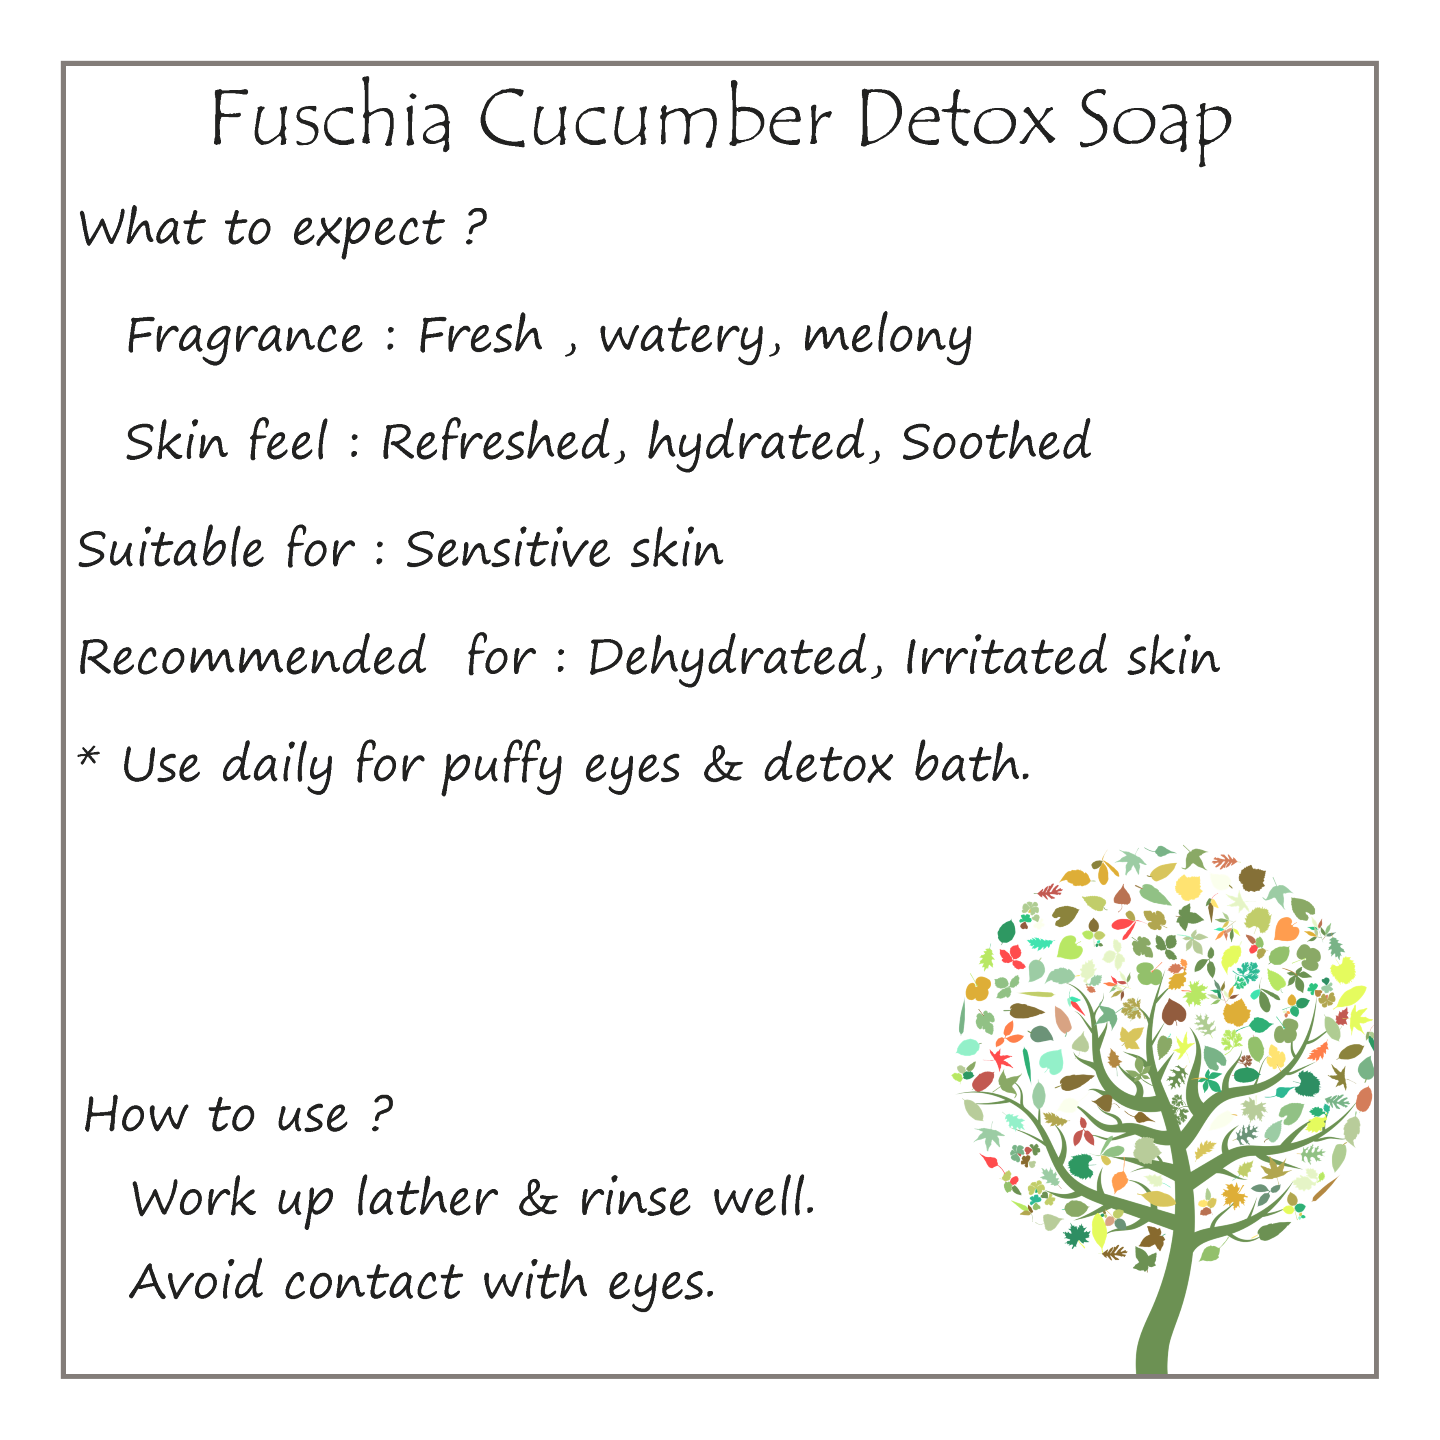 Fuschia - Cucumber Detox Natural Handmade Herbal Soap